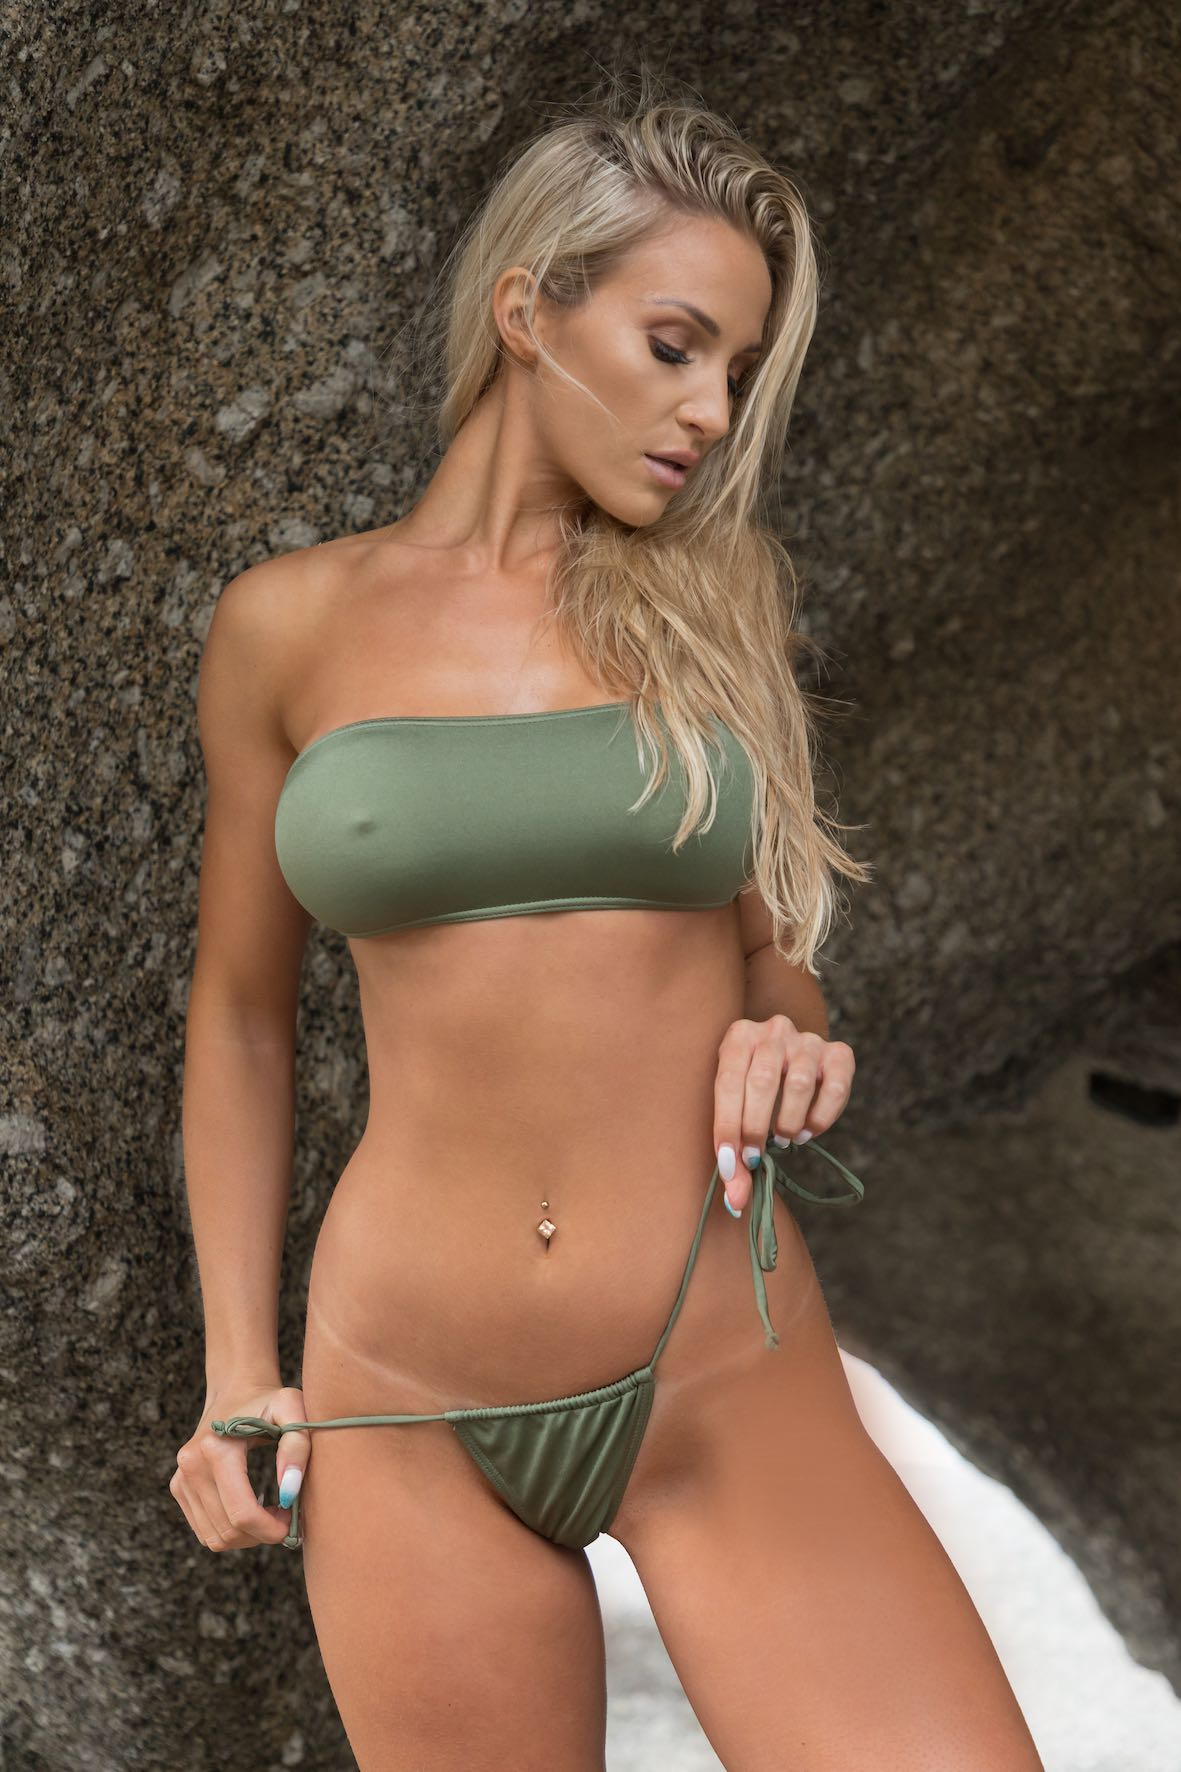 Our South African Babes feature with Kayla Baker